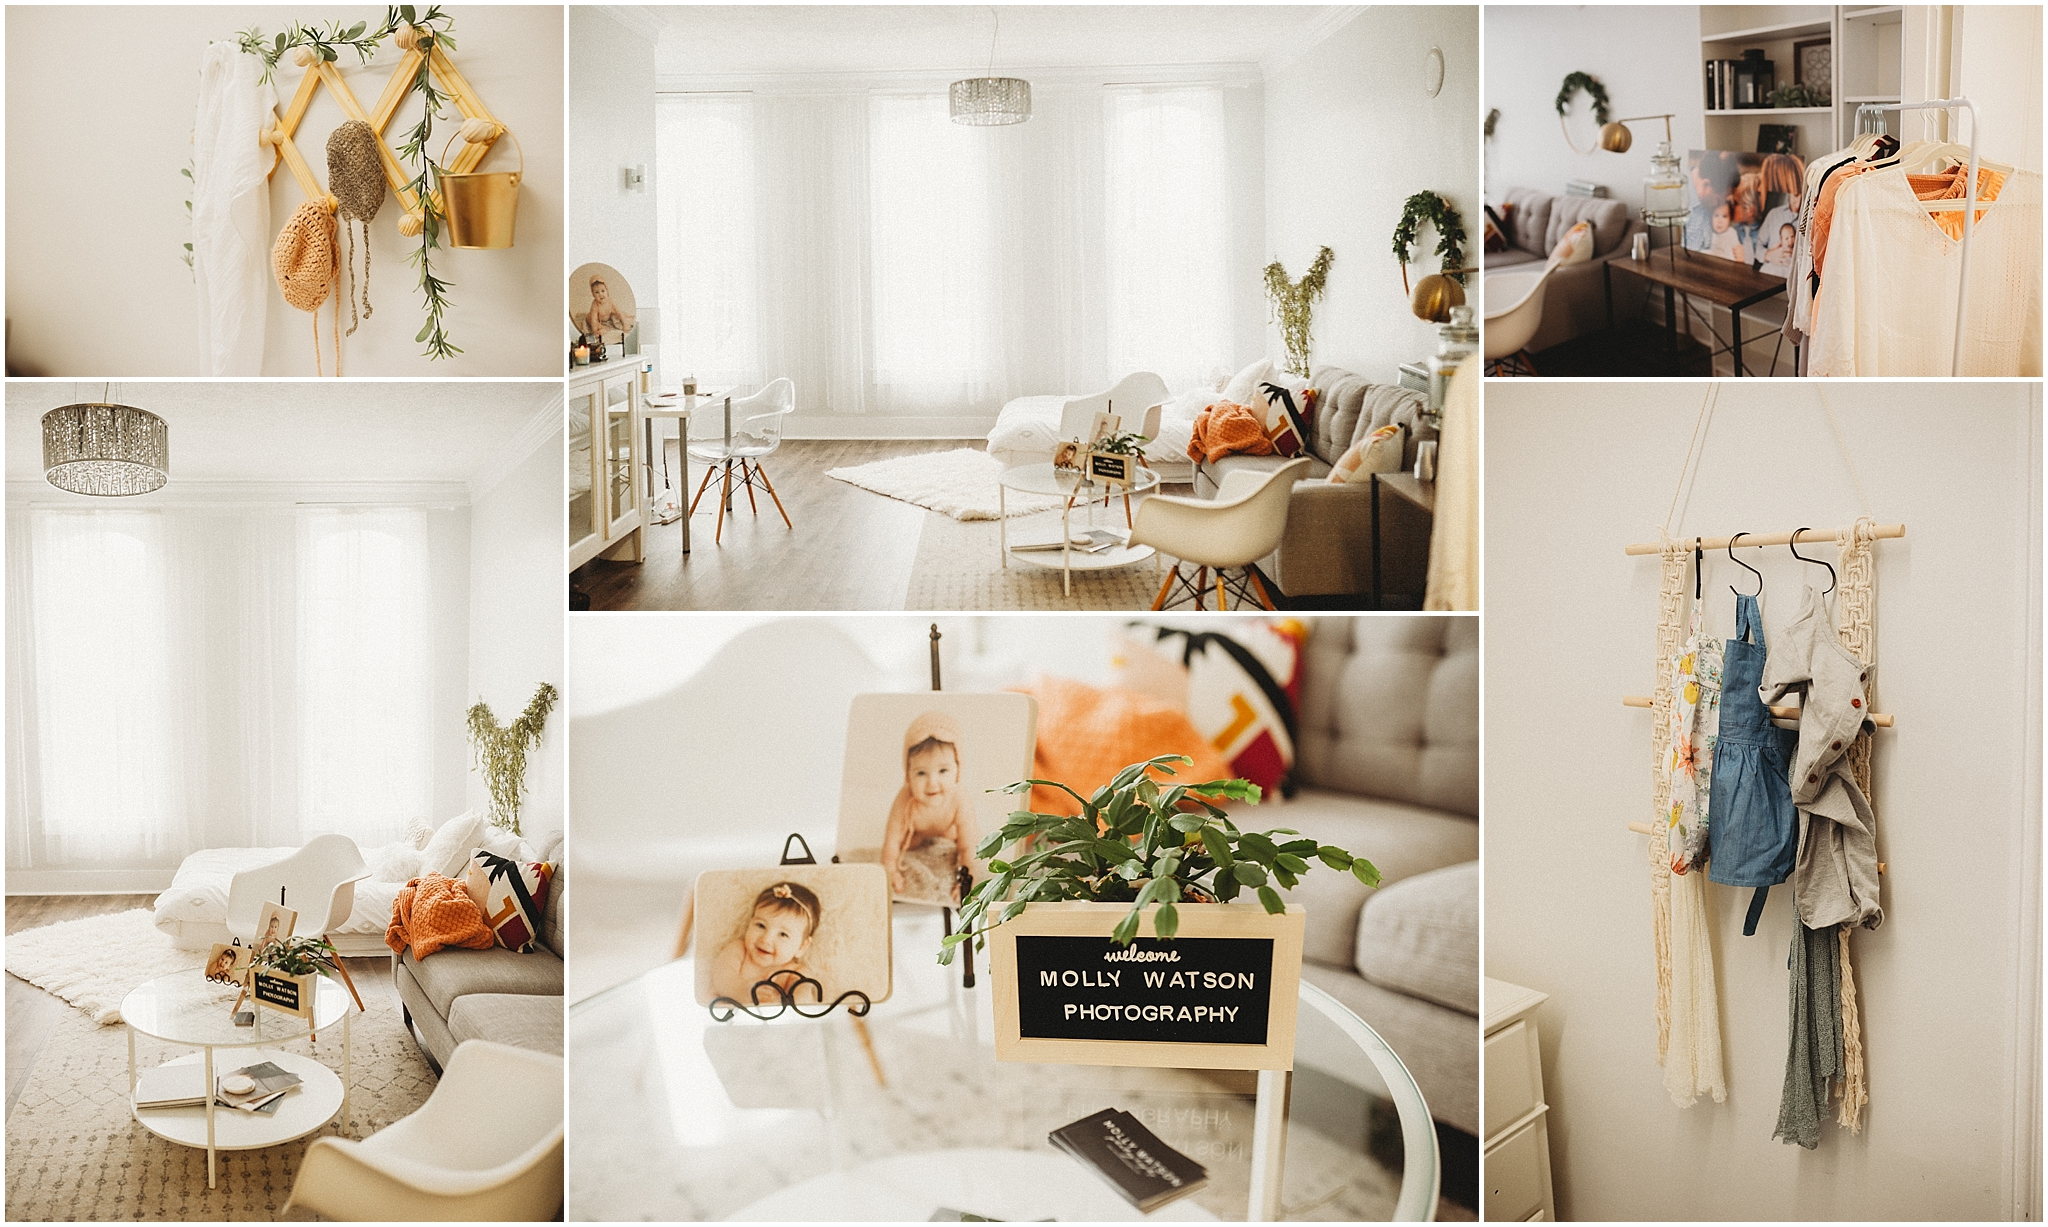 Collage of Molly Watson Photography studio in Medina, OH